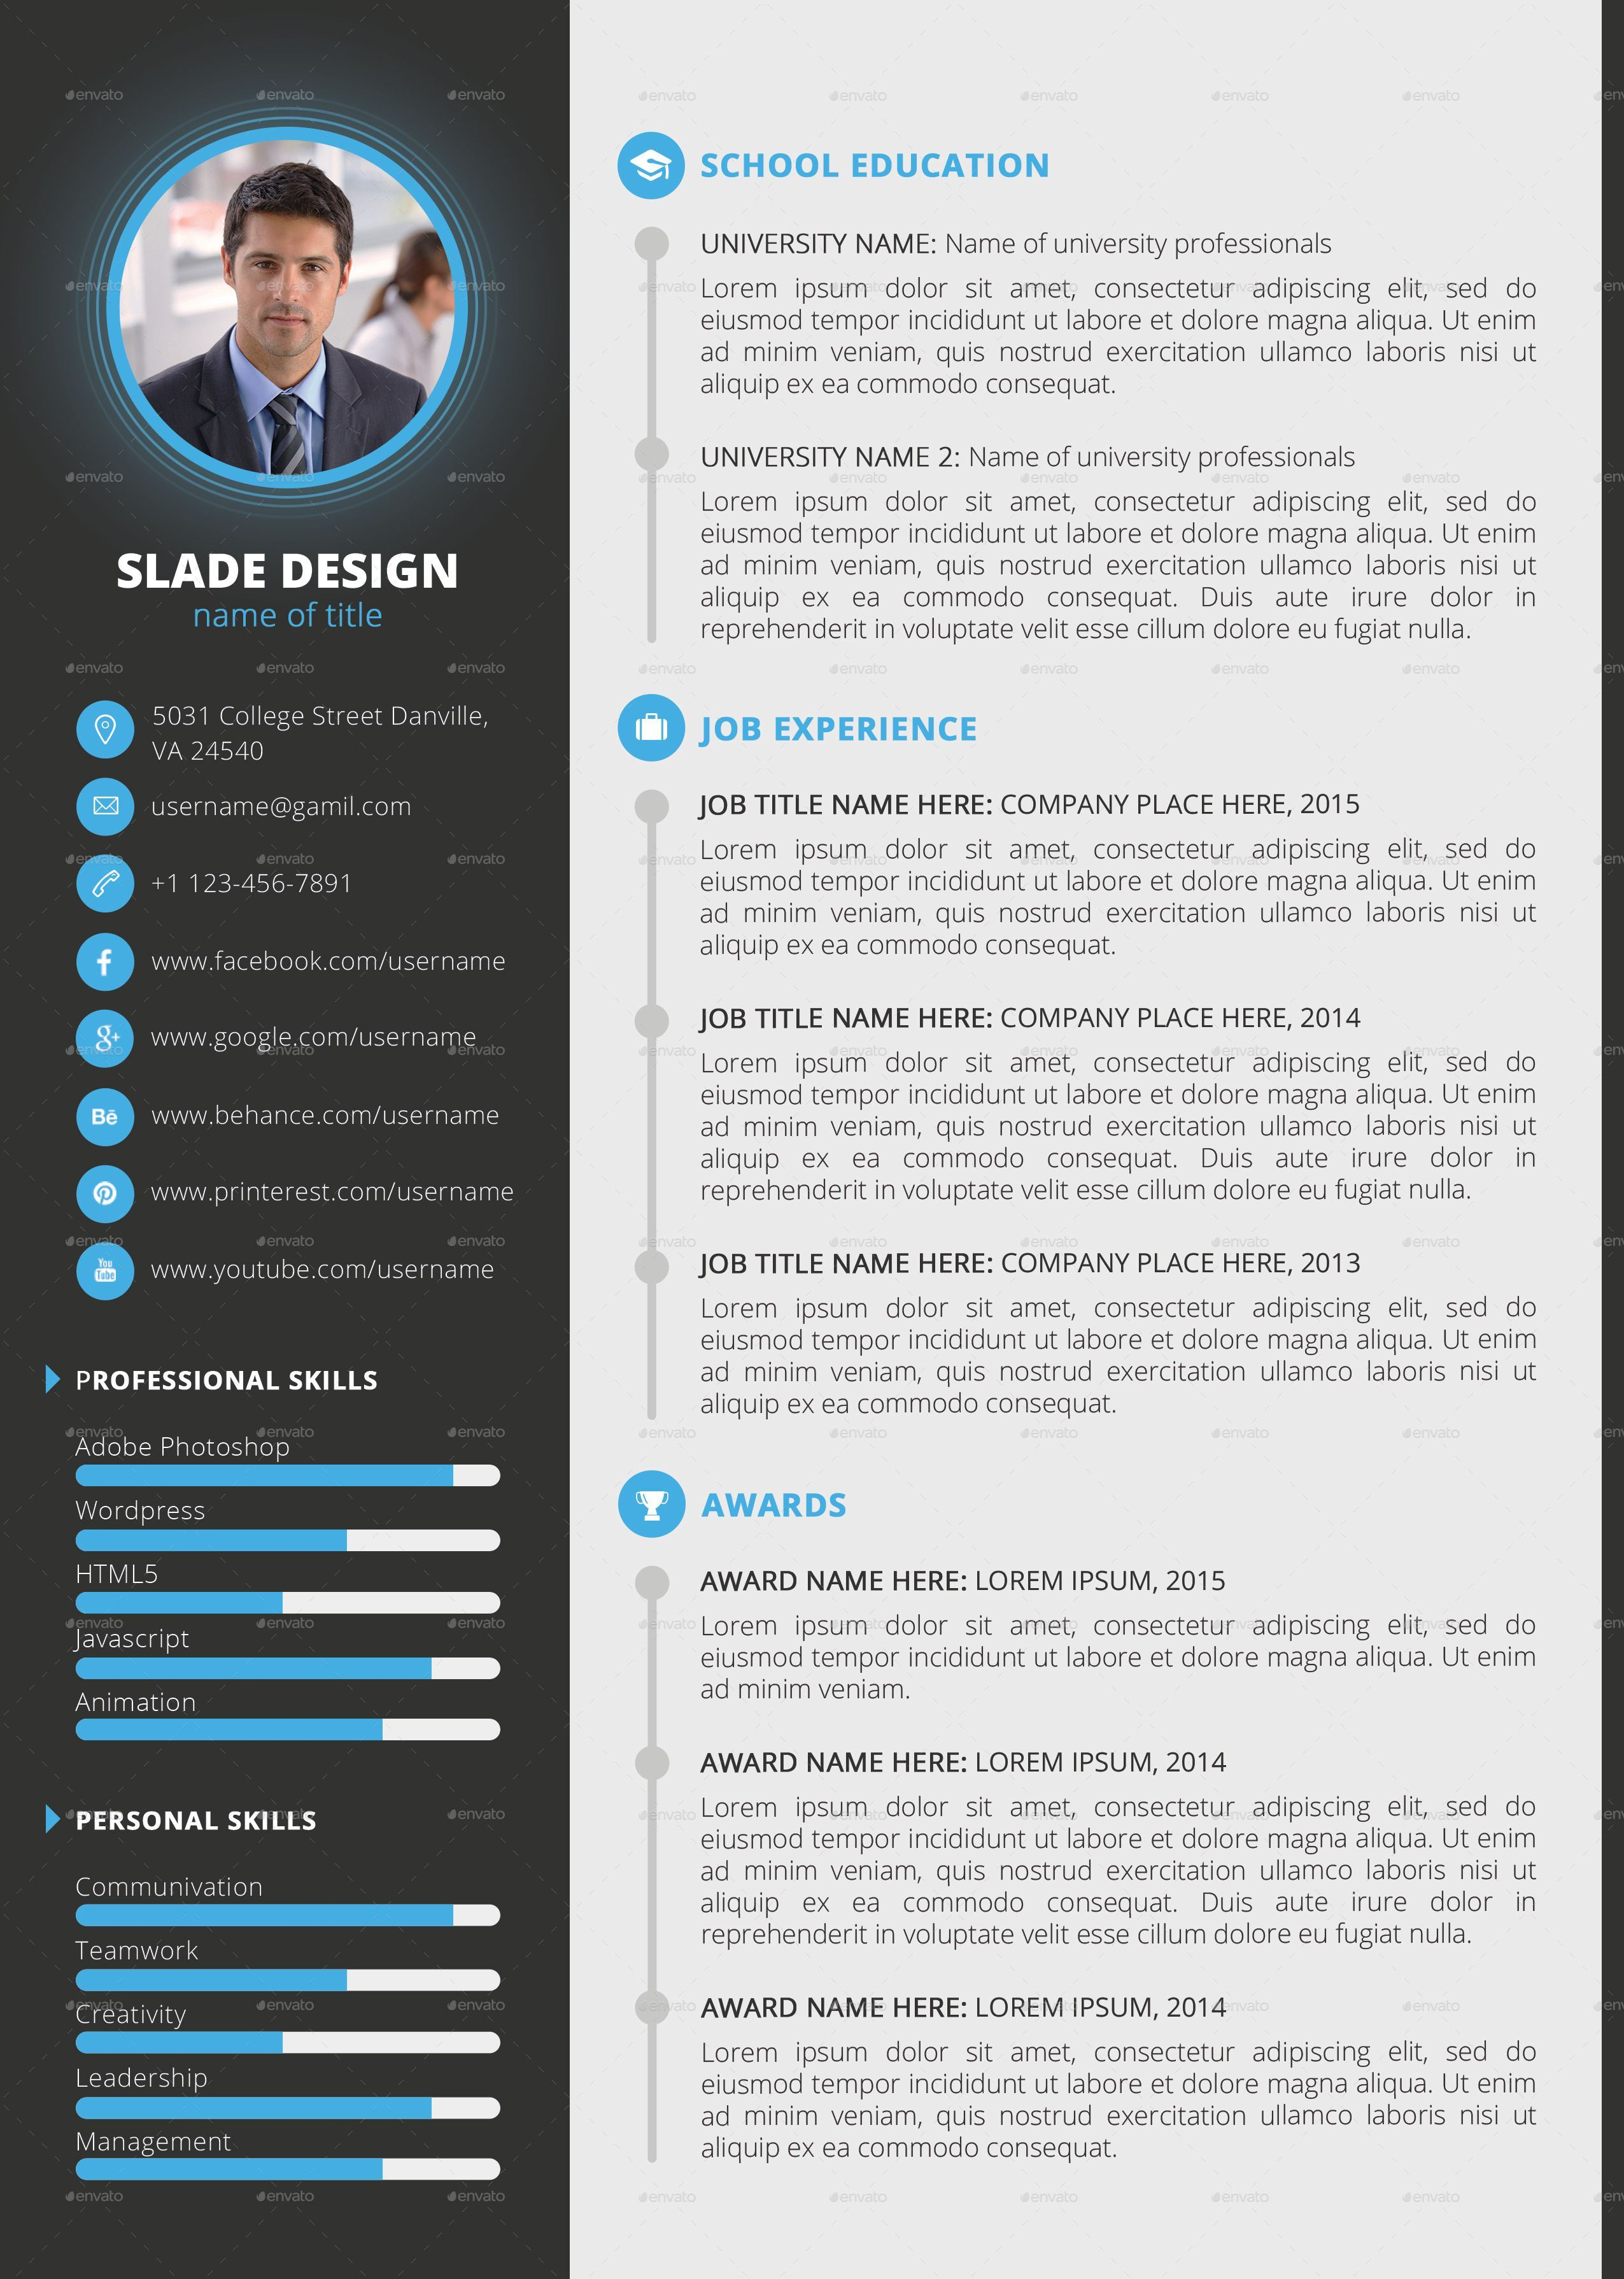 Template Professional Cv Cv Templates Sample Template Example Of Beautiful Excellent Profes Cv Resume Template Cv Template Professional Resume Design Template